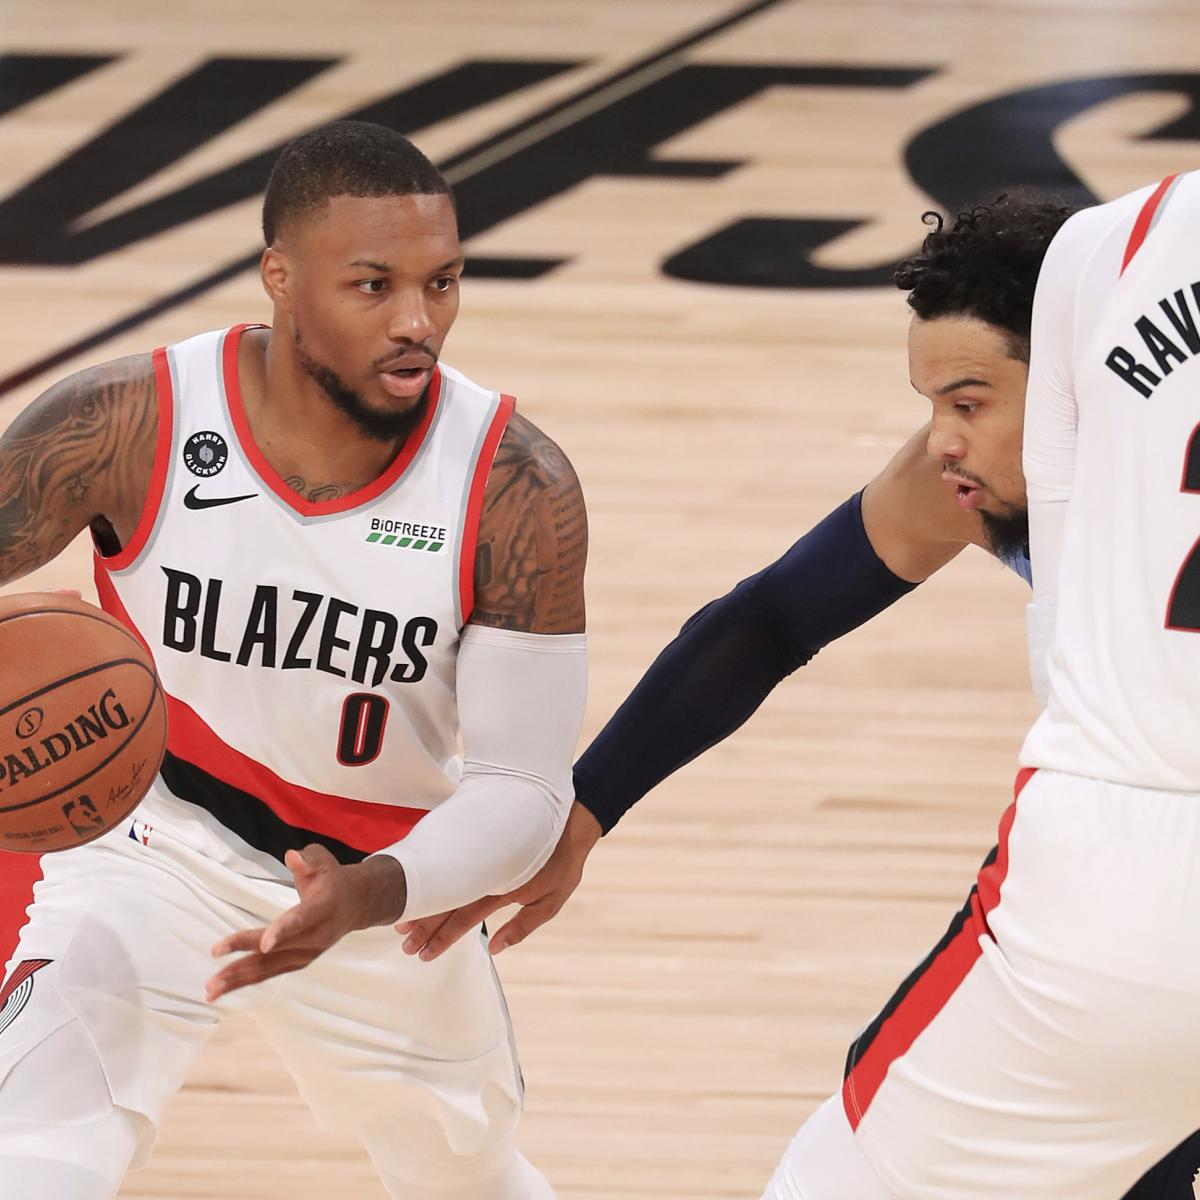 NBA Playoff Standings 2020: Updated Team Records, Seedings and More